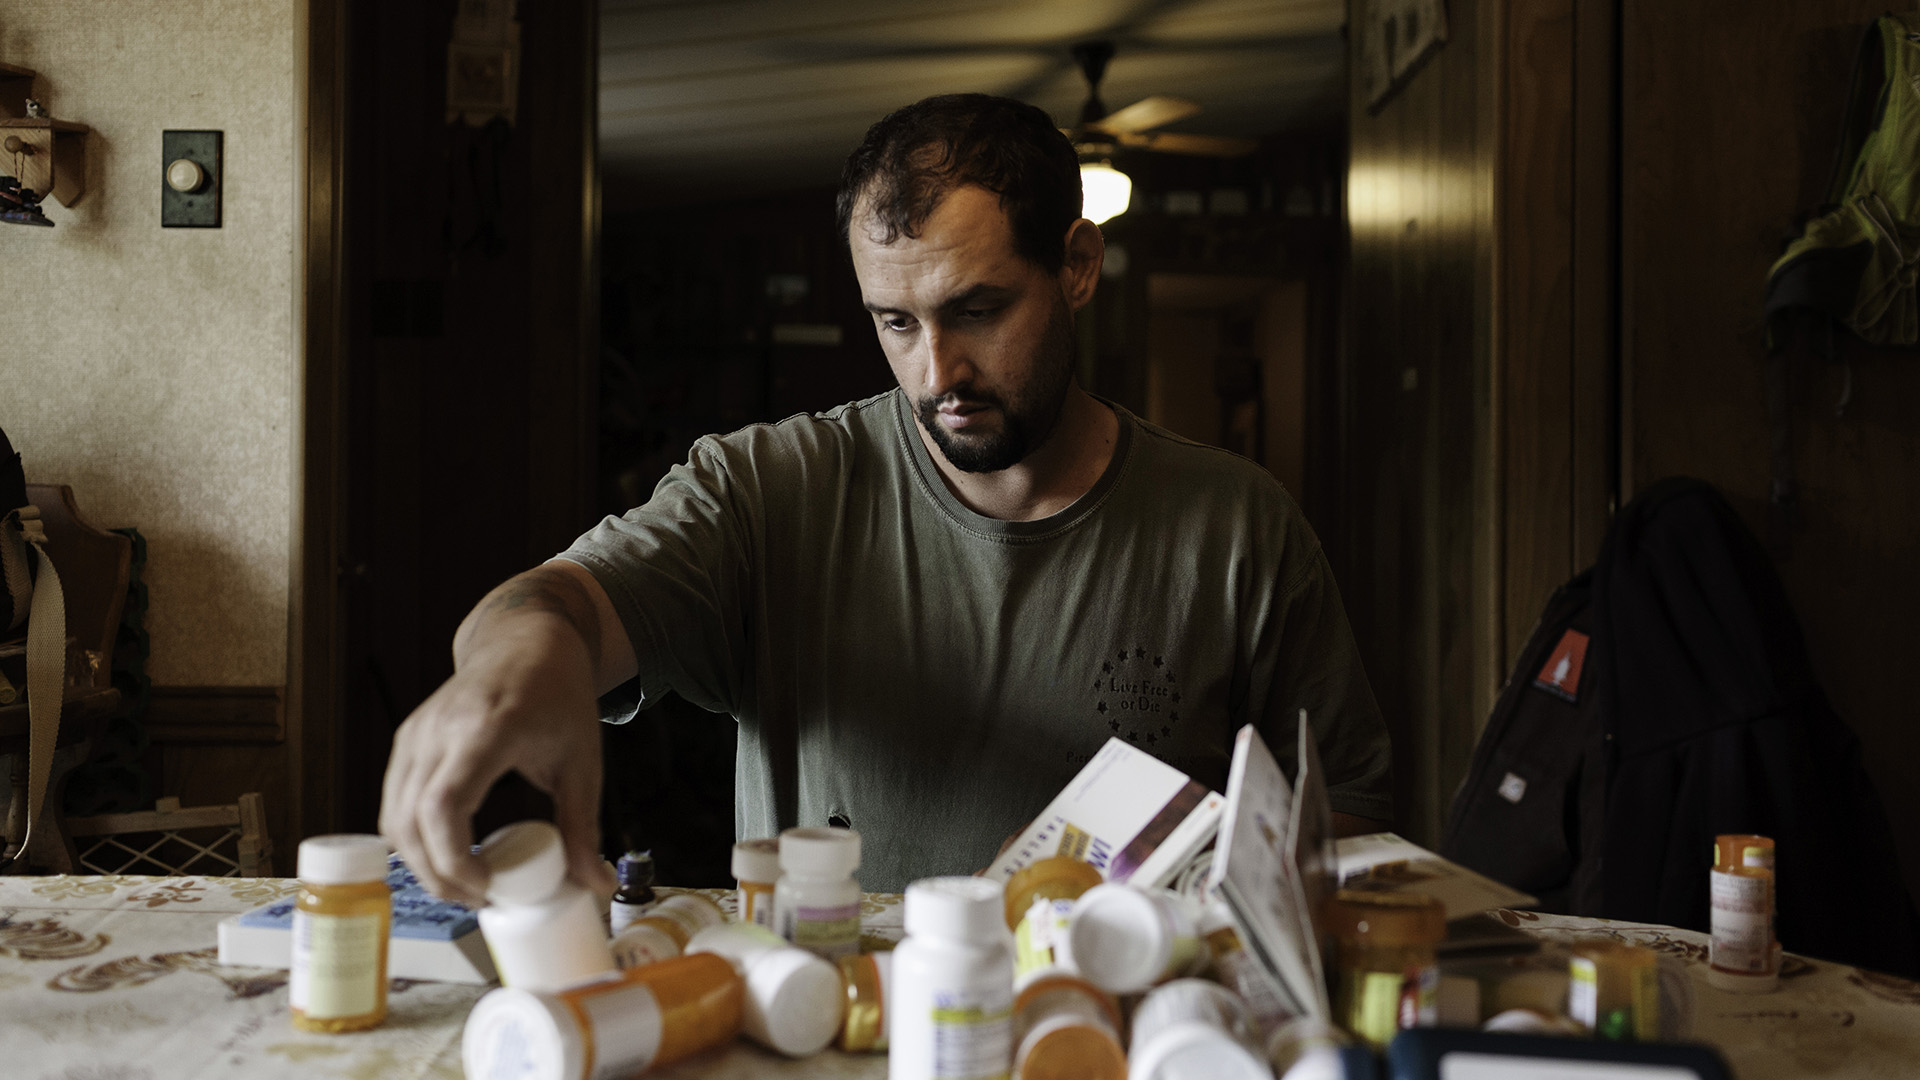 U.S. Army veteran Alex Sutton sorts through an assortment of prescription medications on the kitchen table of his home. After being medically retired from the Army for Chronic PTSD, Sgt. Sutton was given a disability rating of 100% from the Veteran's Administration.